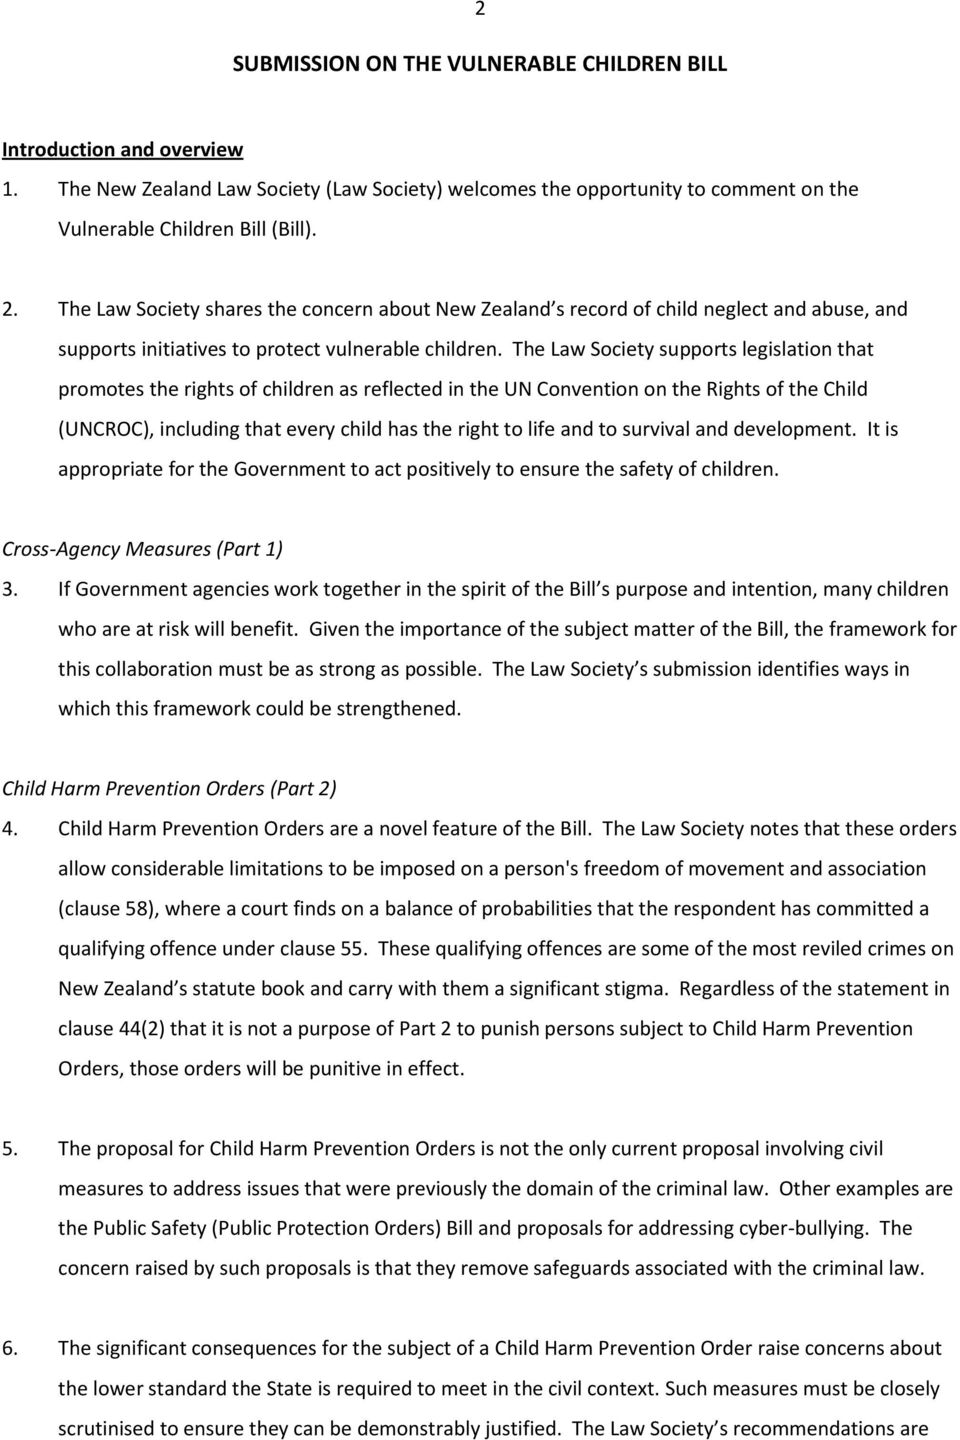 The Law Society supports legislation that promotes the rights of children as reflected in the UN Convention on the Rights of the Child (UNCROC), including that every child has the right to life and